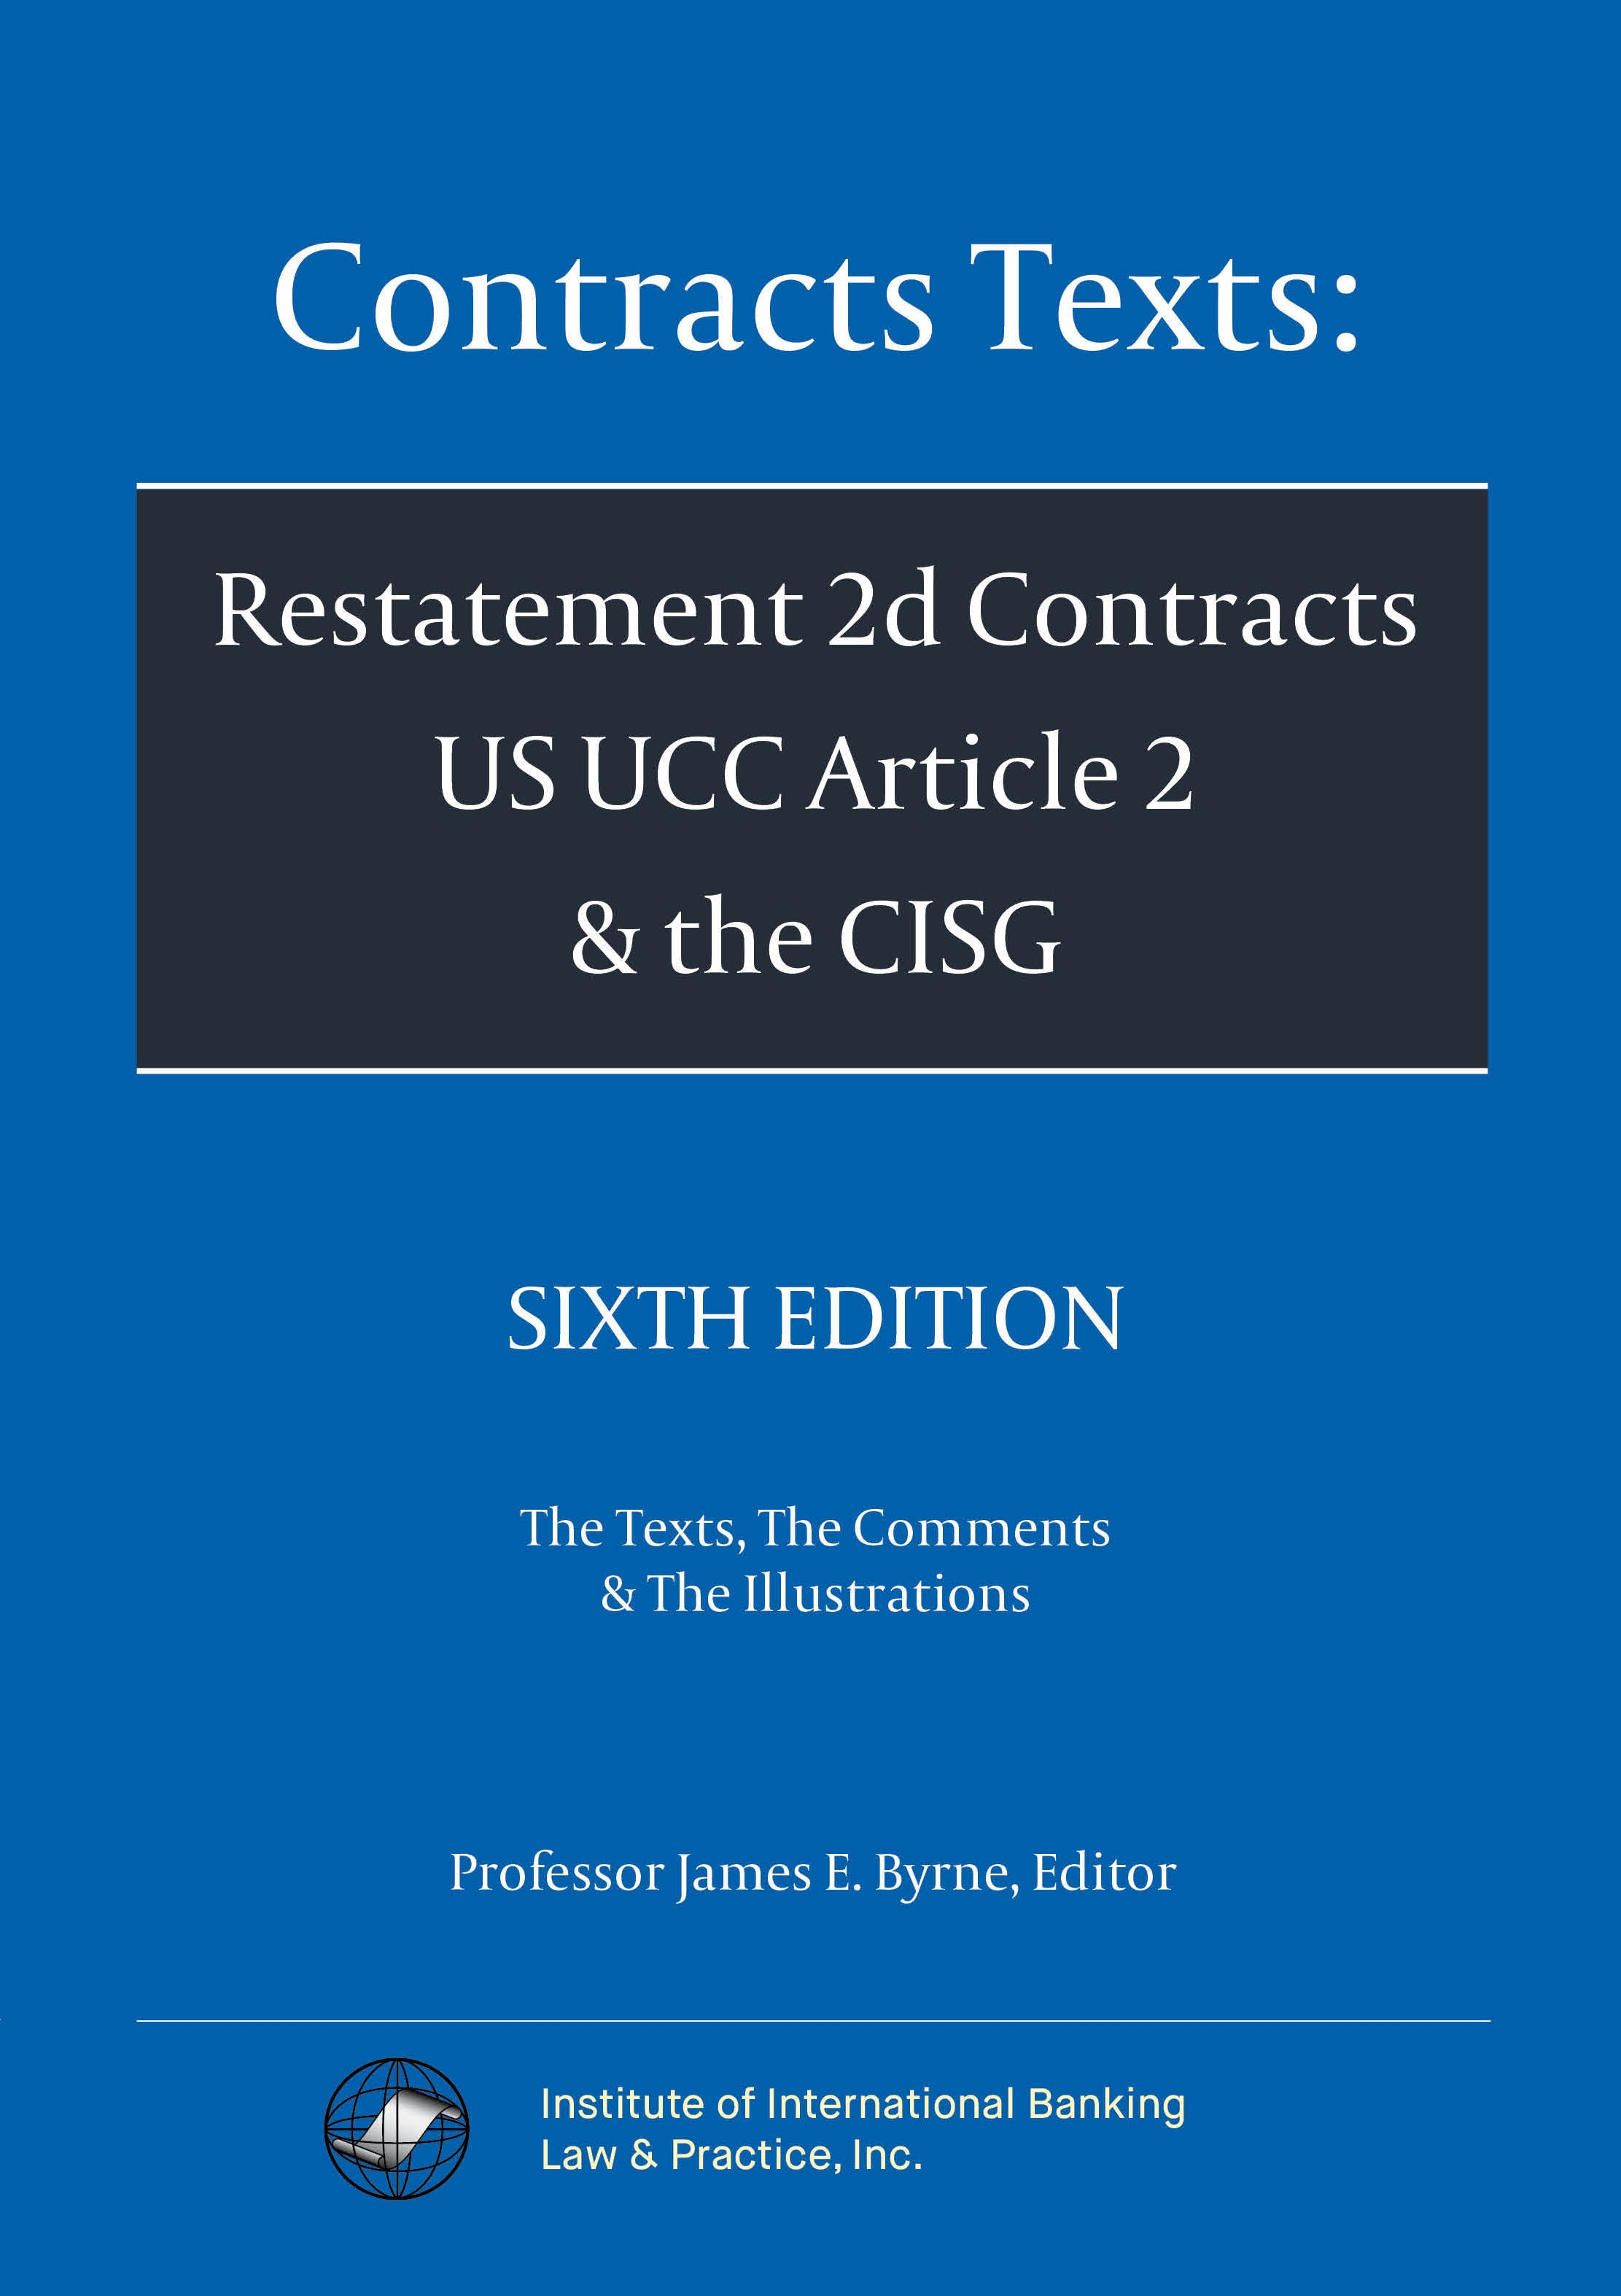 Contracts Texts: Restatement 2d Contracts, UCC Article 2 and CISG 6th Edition